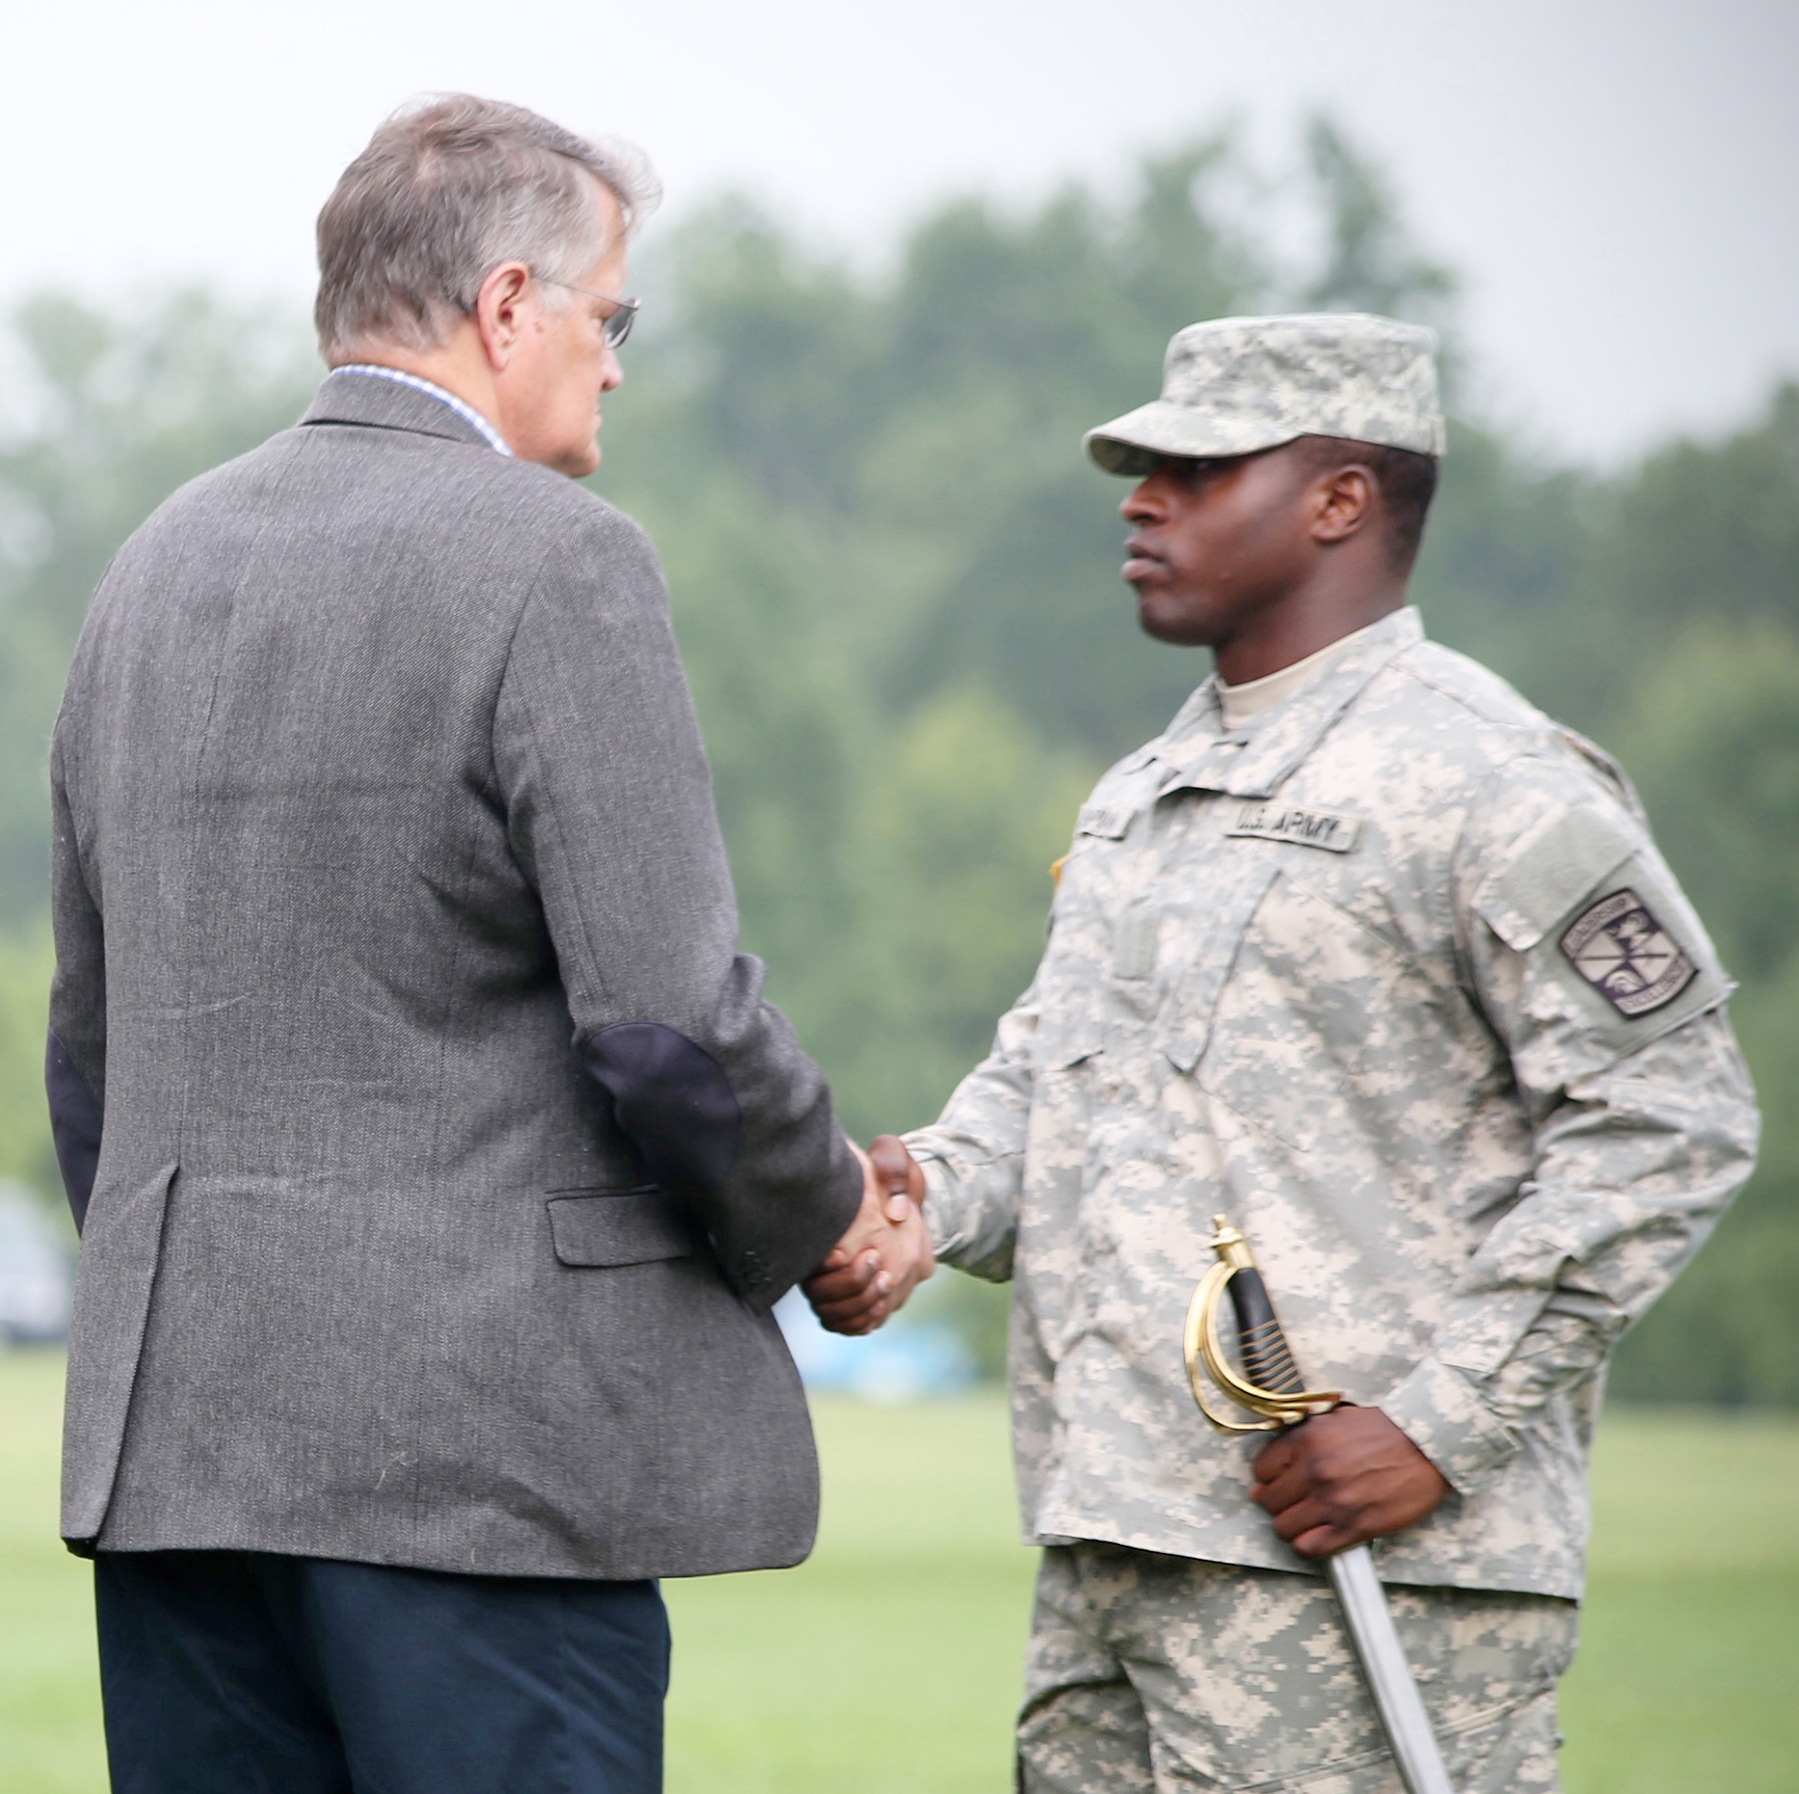 FVSU cadet receives coveted Army award - Fort Valley State